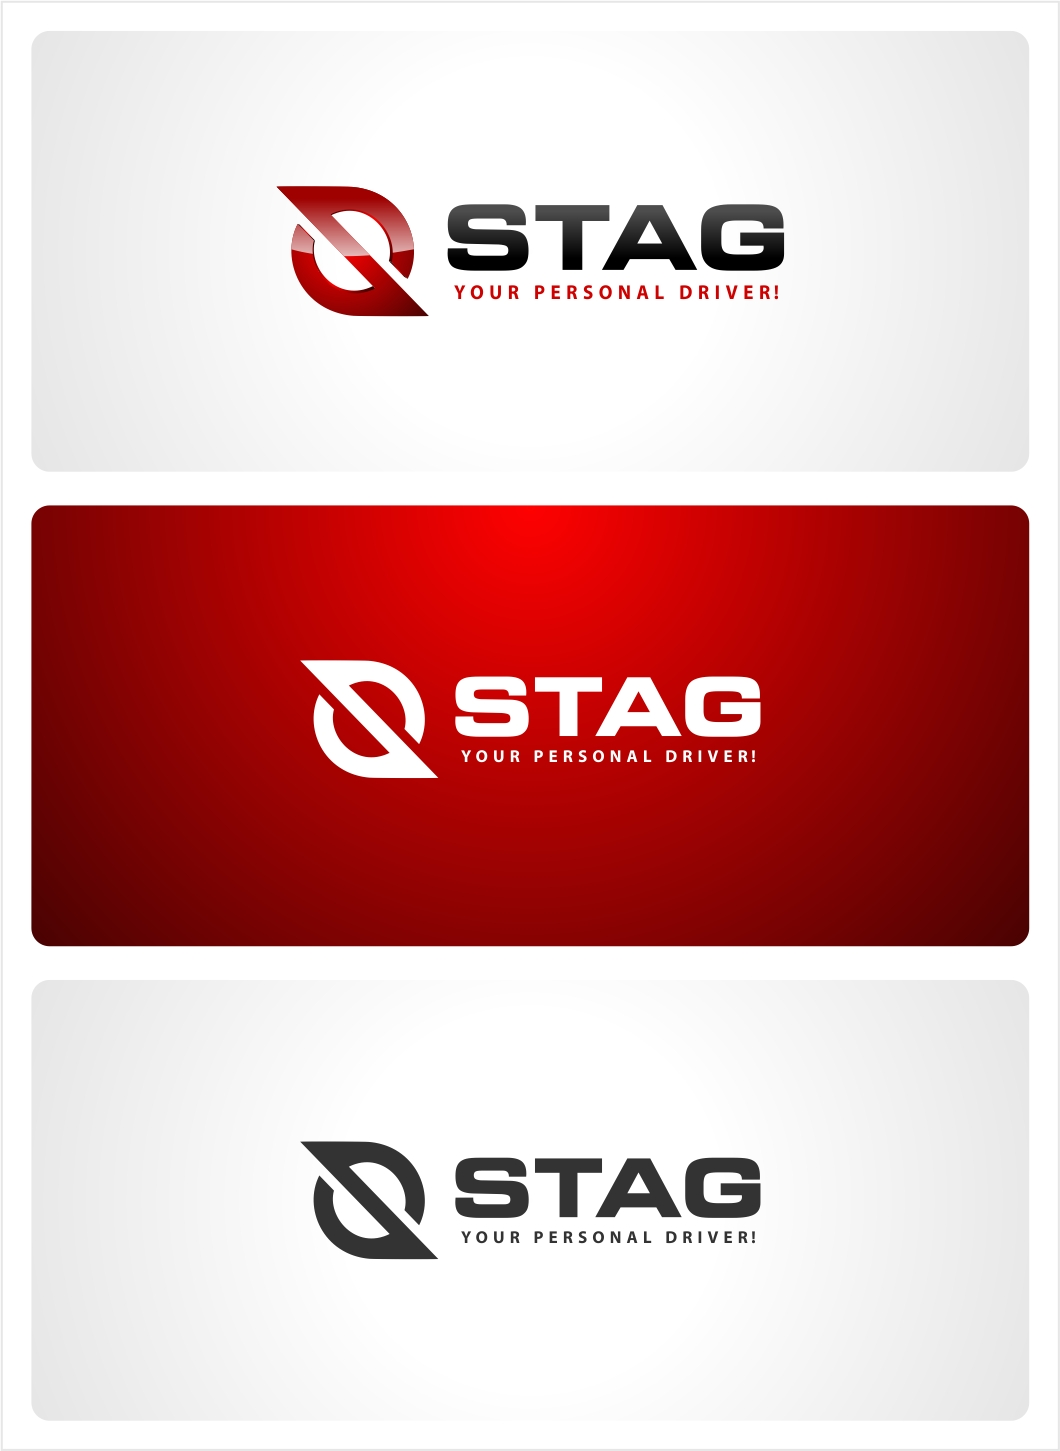 Logo Design by haidu - Entry No. 214 in the Logo Design Contest Unique Logo Design Wanted for Stag.